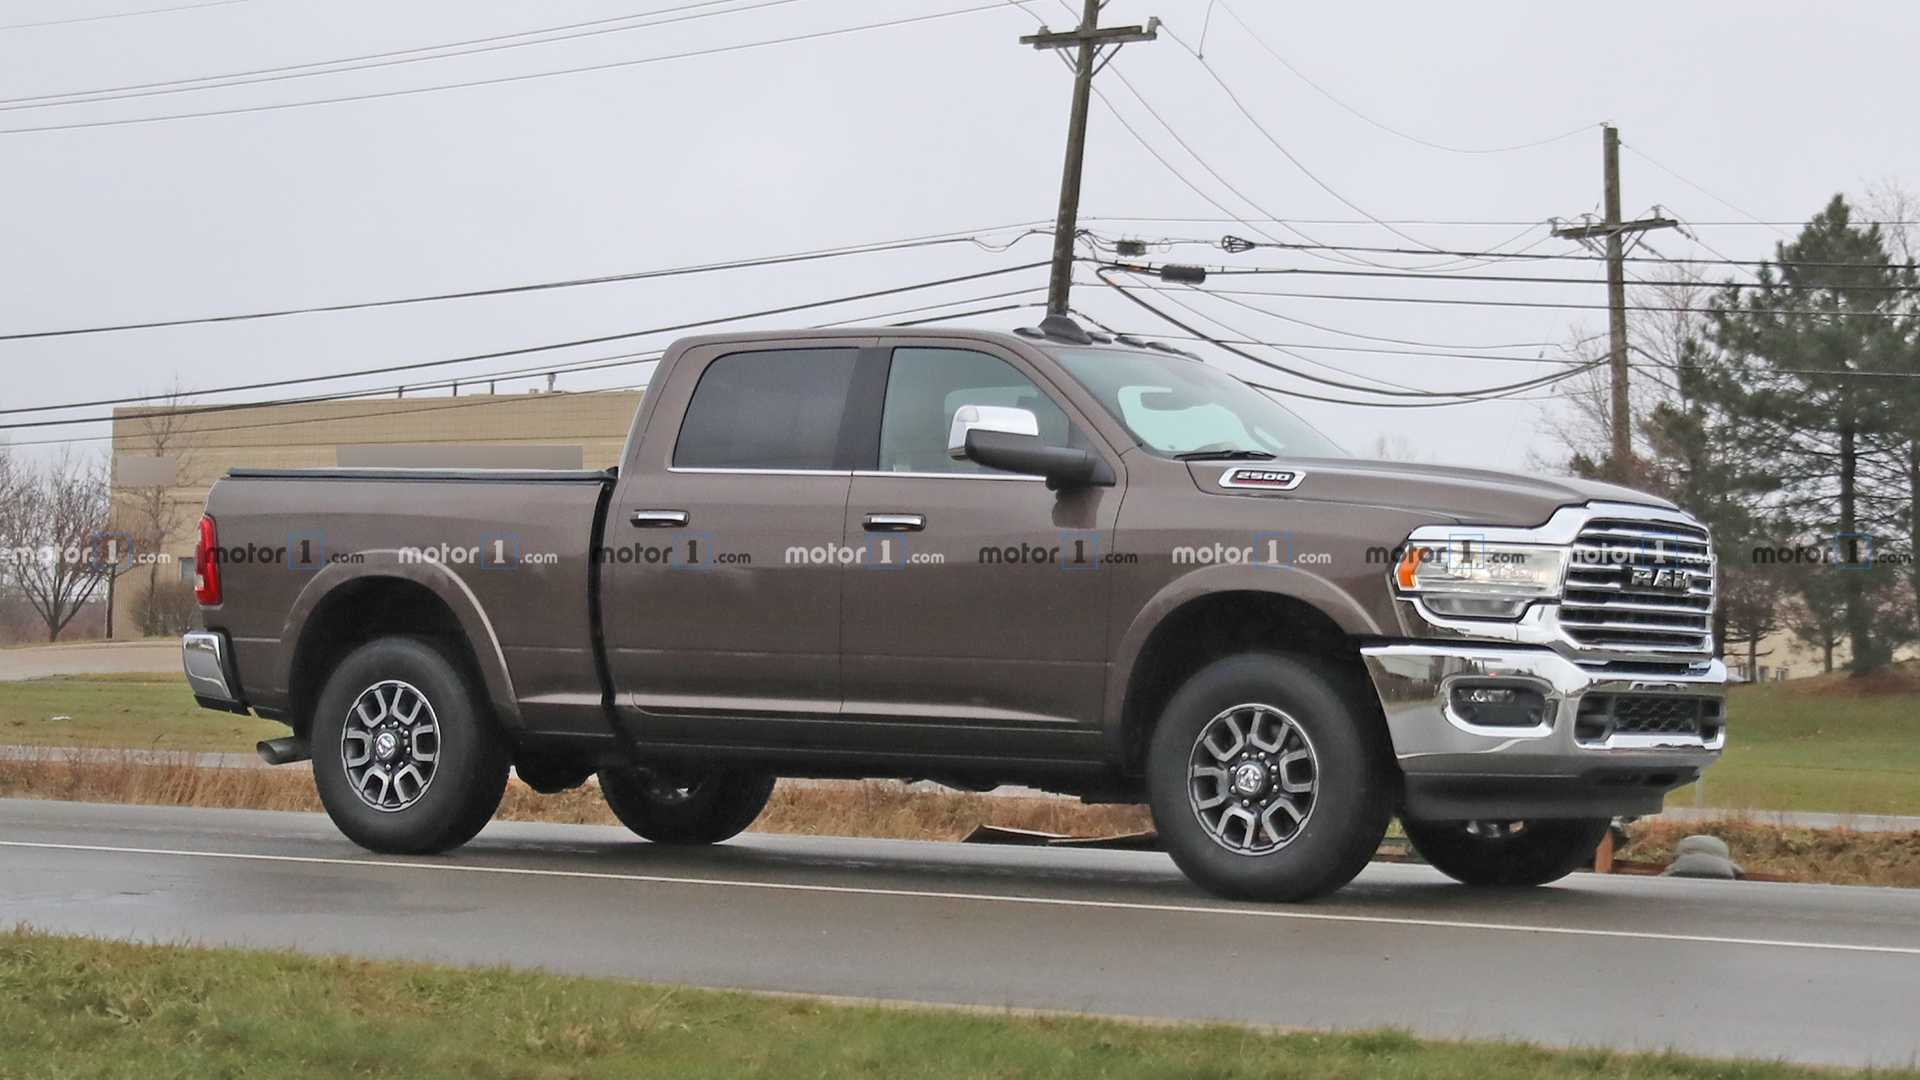 35 Best 2020 Dodge Ram 2500 Price Design And Review